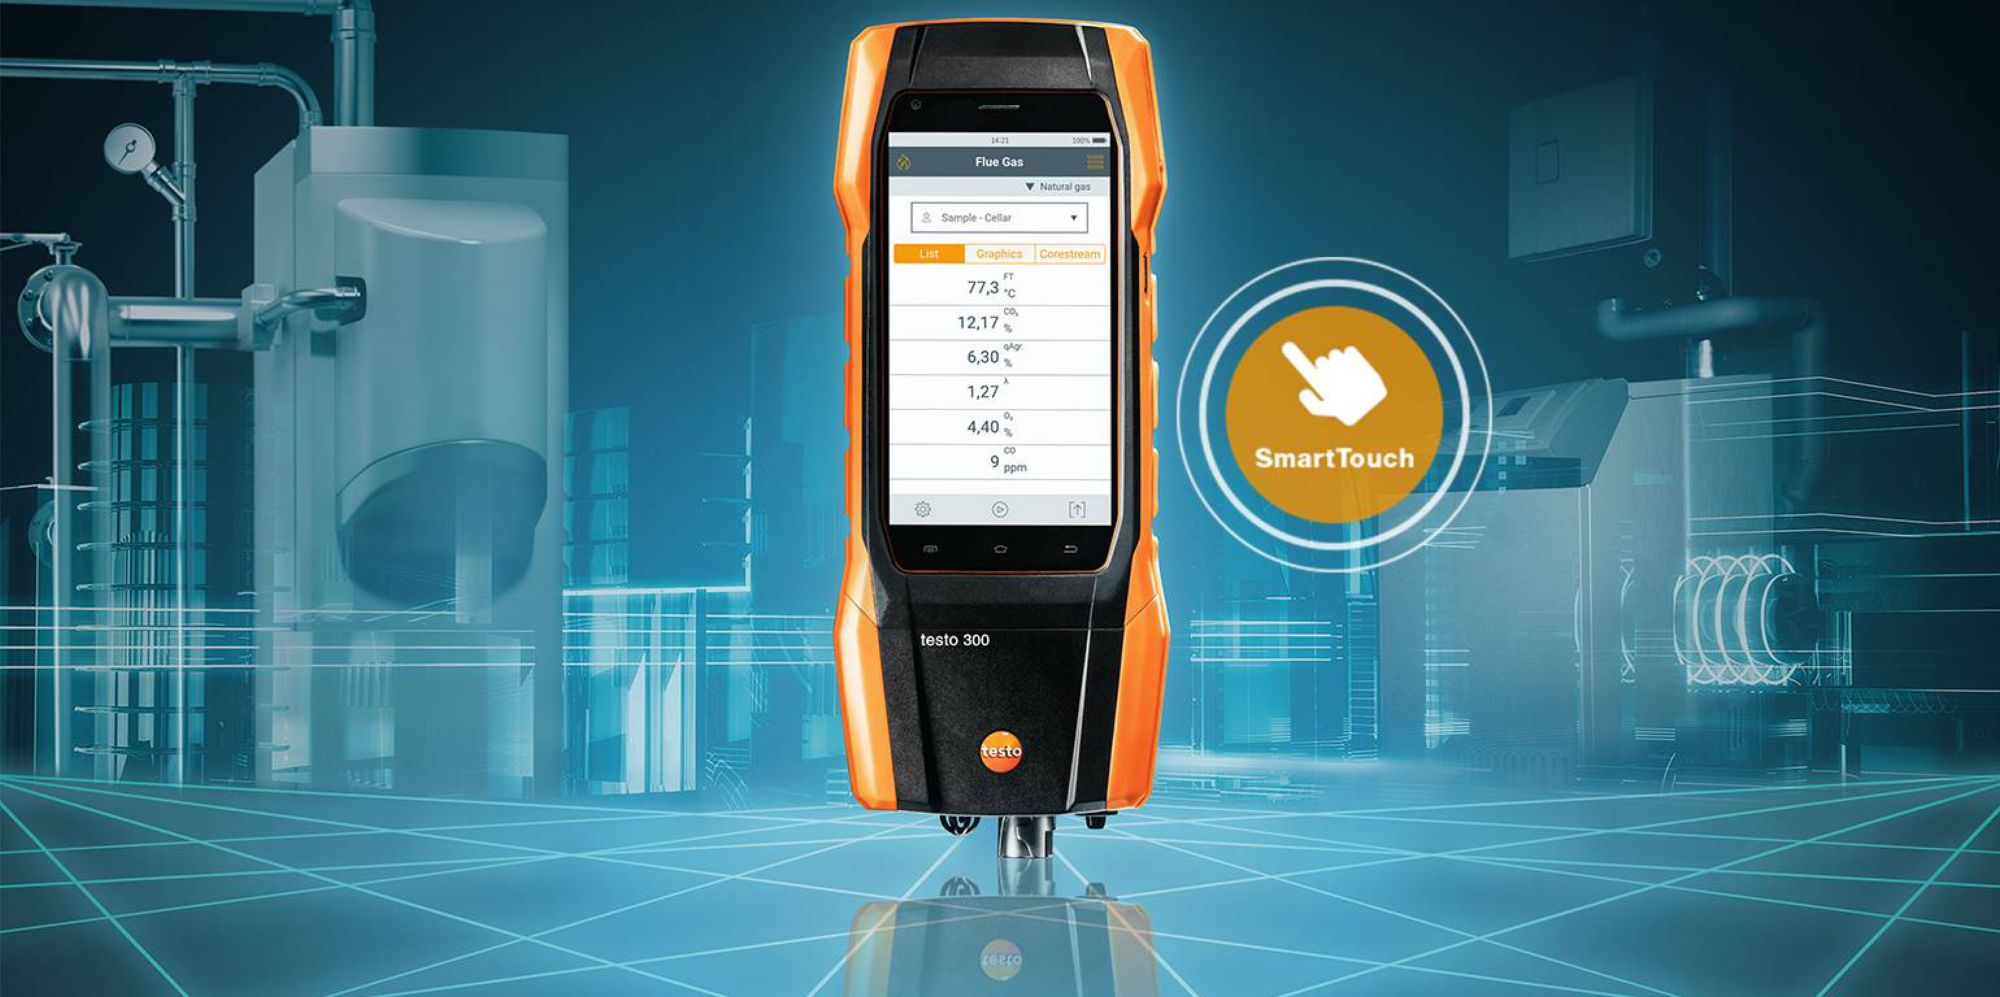 The testo 300 flue gas analyzer